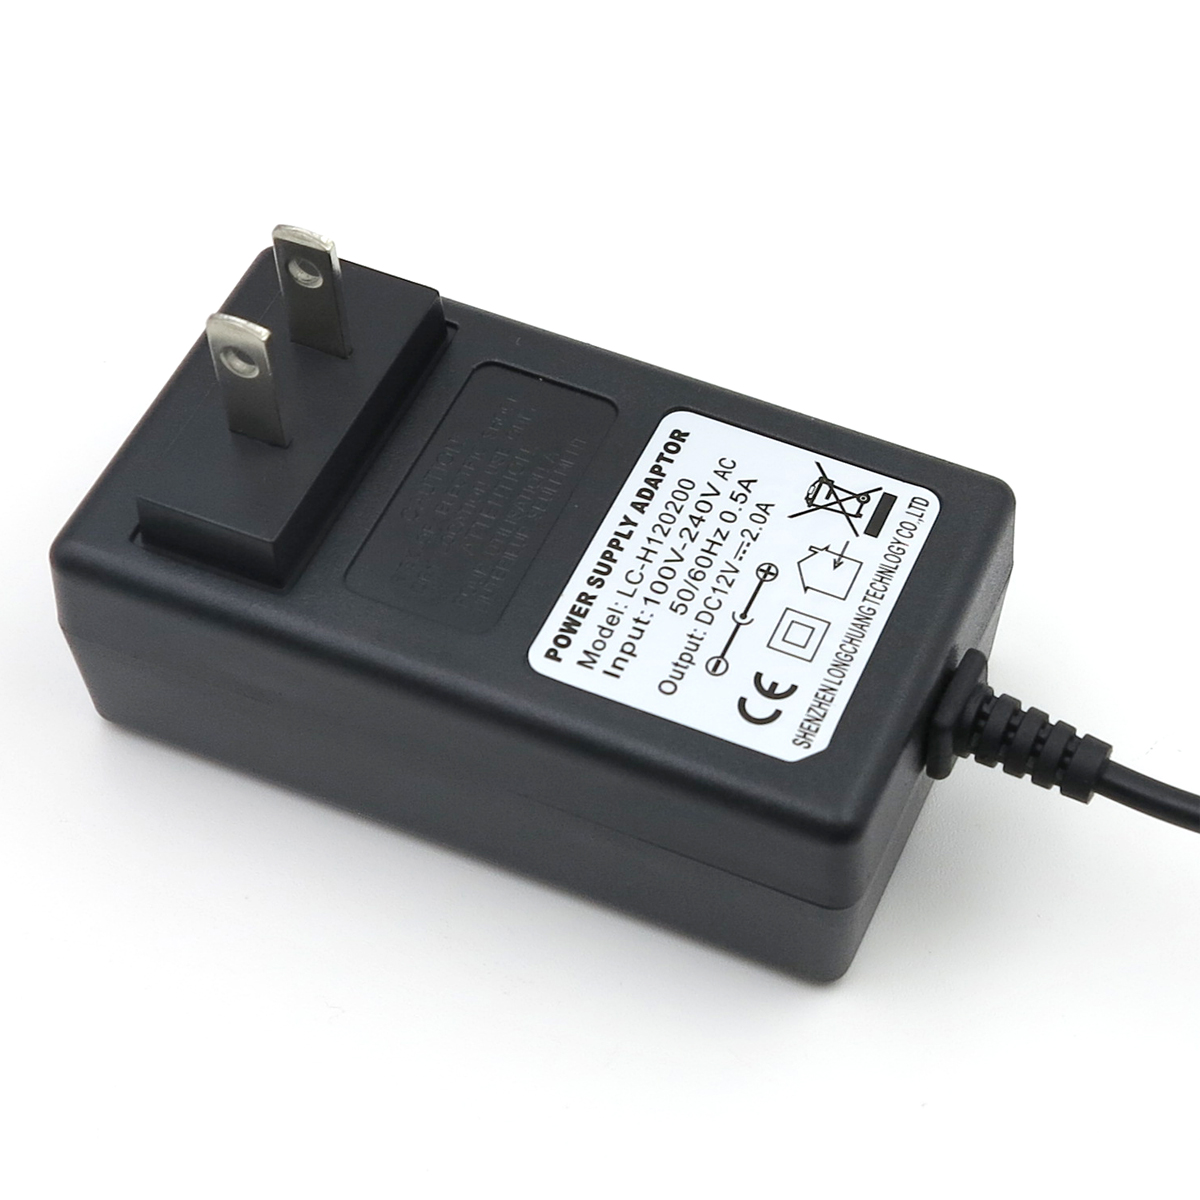 Adaptor 14V0. 5A Charger Switching Power Supply untuk Audio Amplifier Pencahayaan Langit-langit Lampu LED